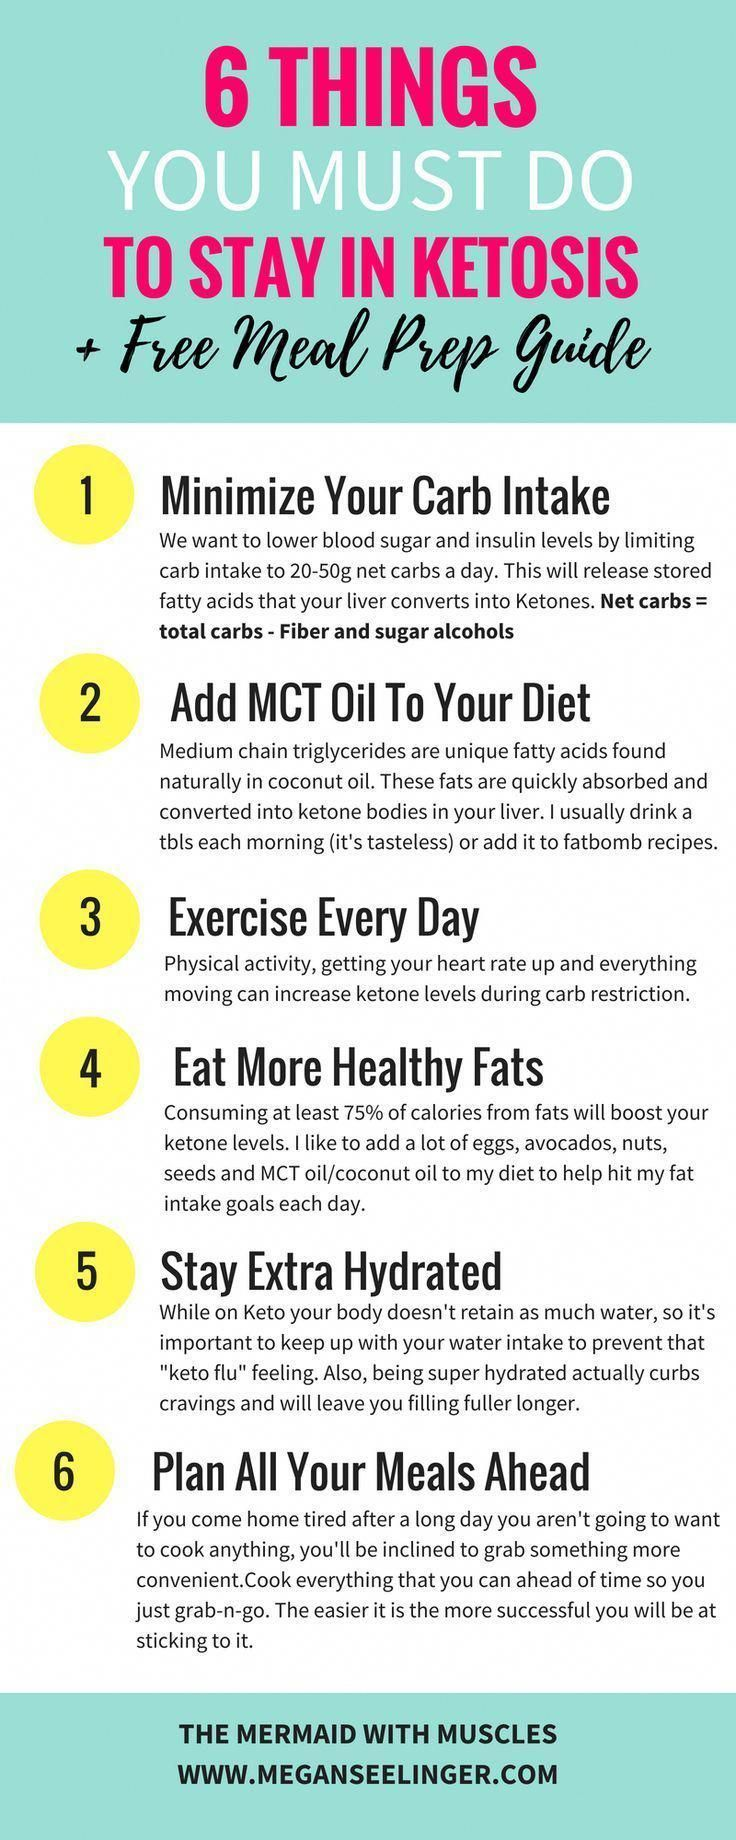 Food Tips To Lose Weight Fast